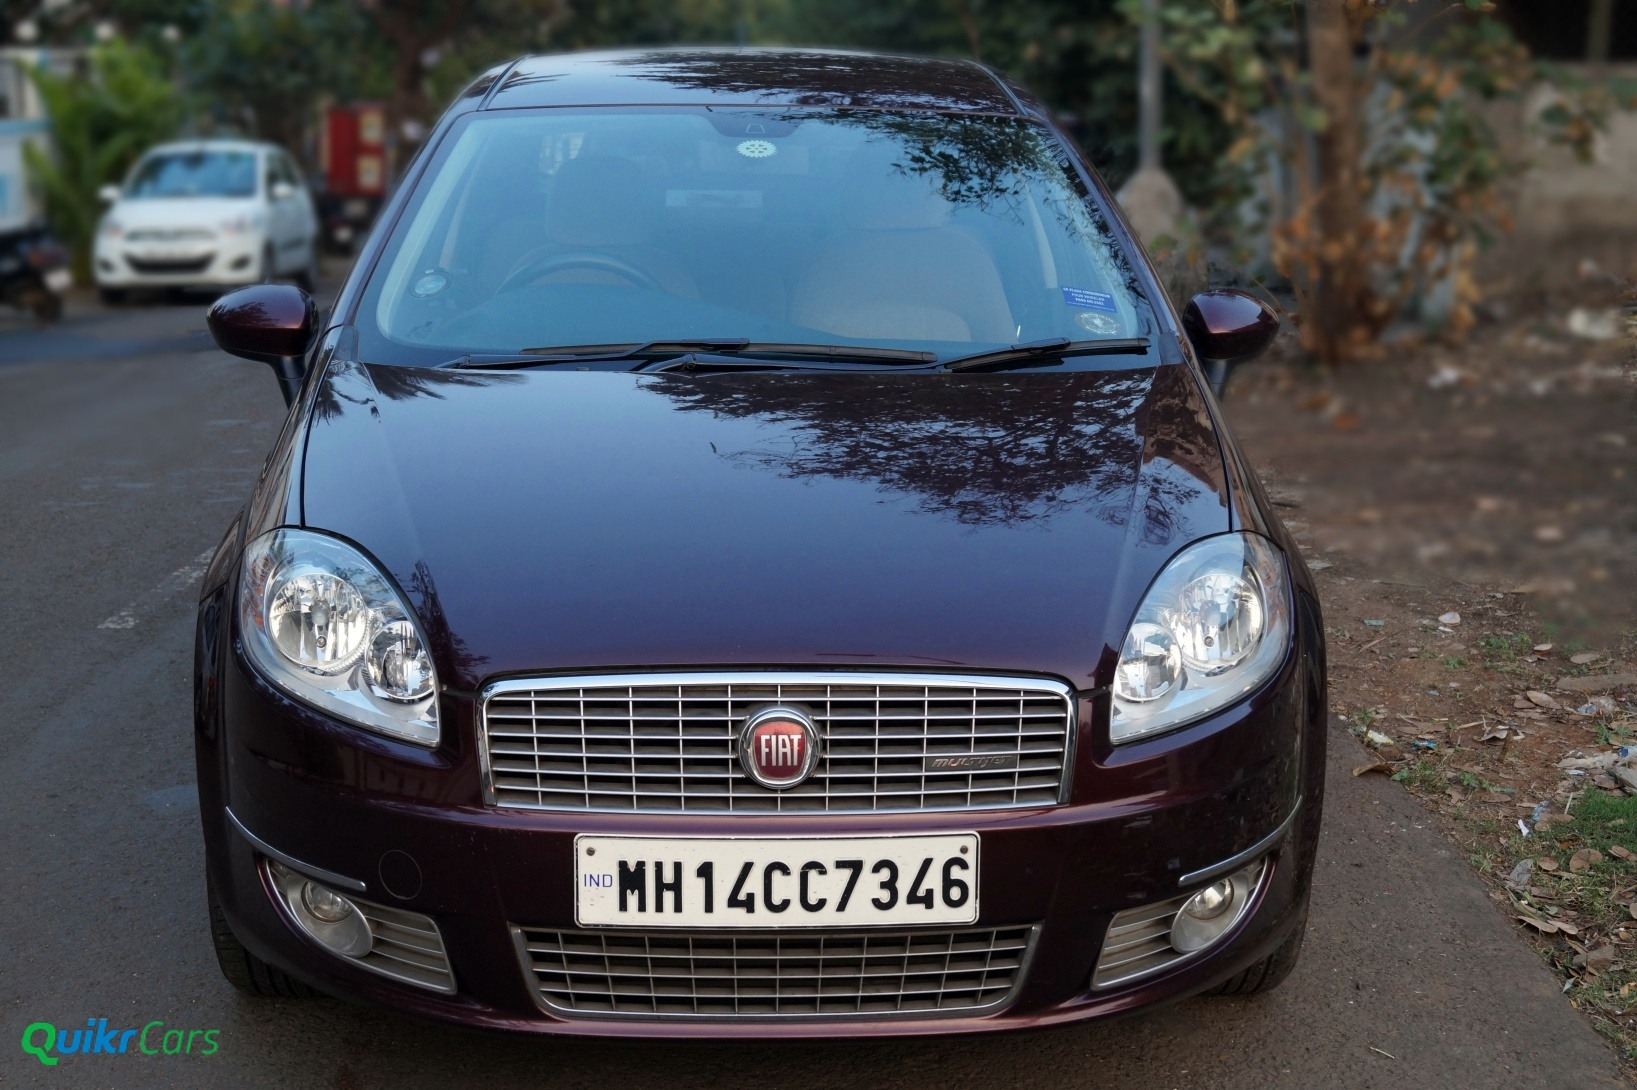 fiat review turbo drive jet linia test linea specification petrol s price road